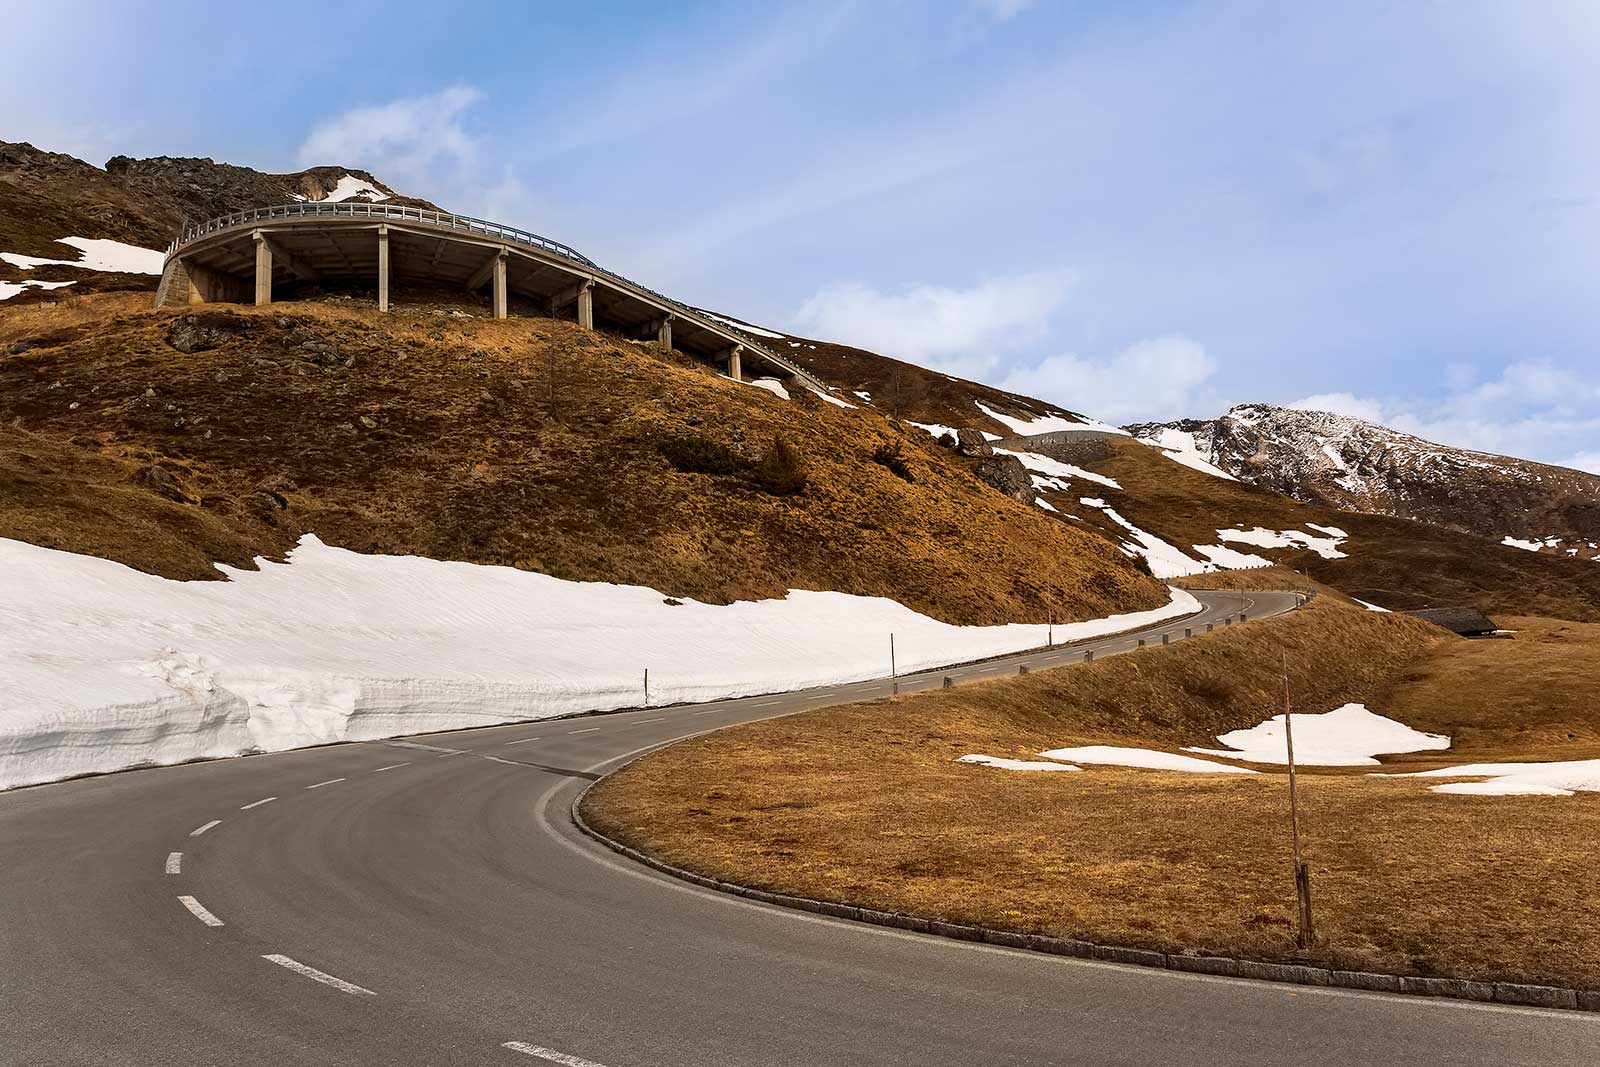 48 kilometres of high alpine road with 36 bends and an altitude ascent to 2.504 metres at the highest point are just a few fact about the Grossglockern High Alpine Road.